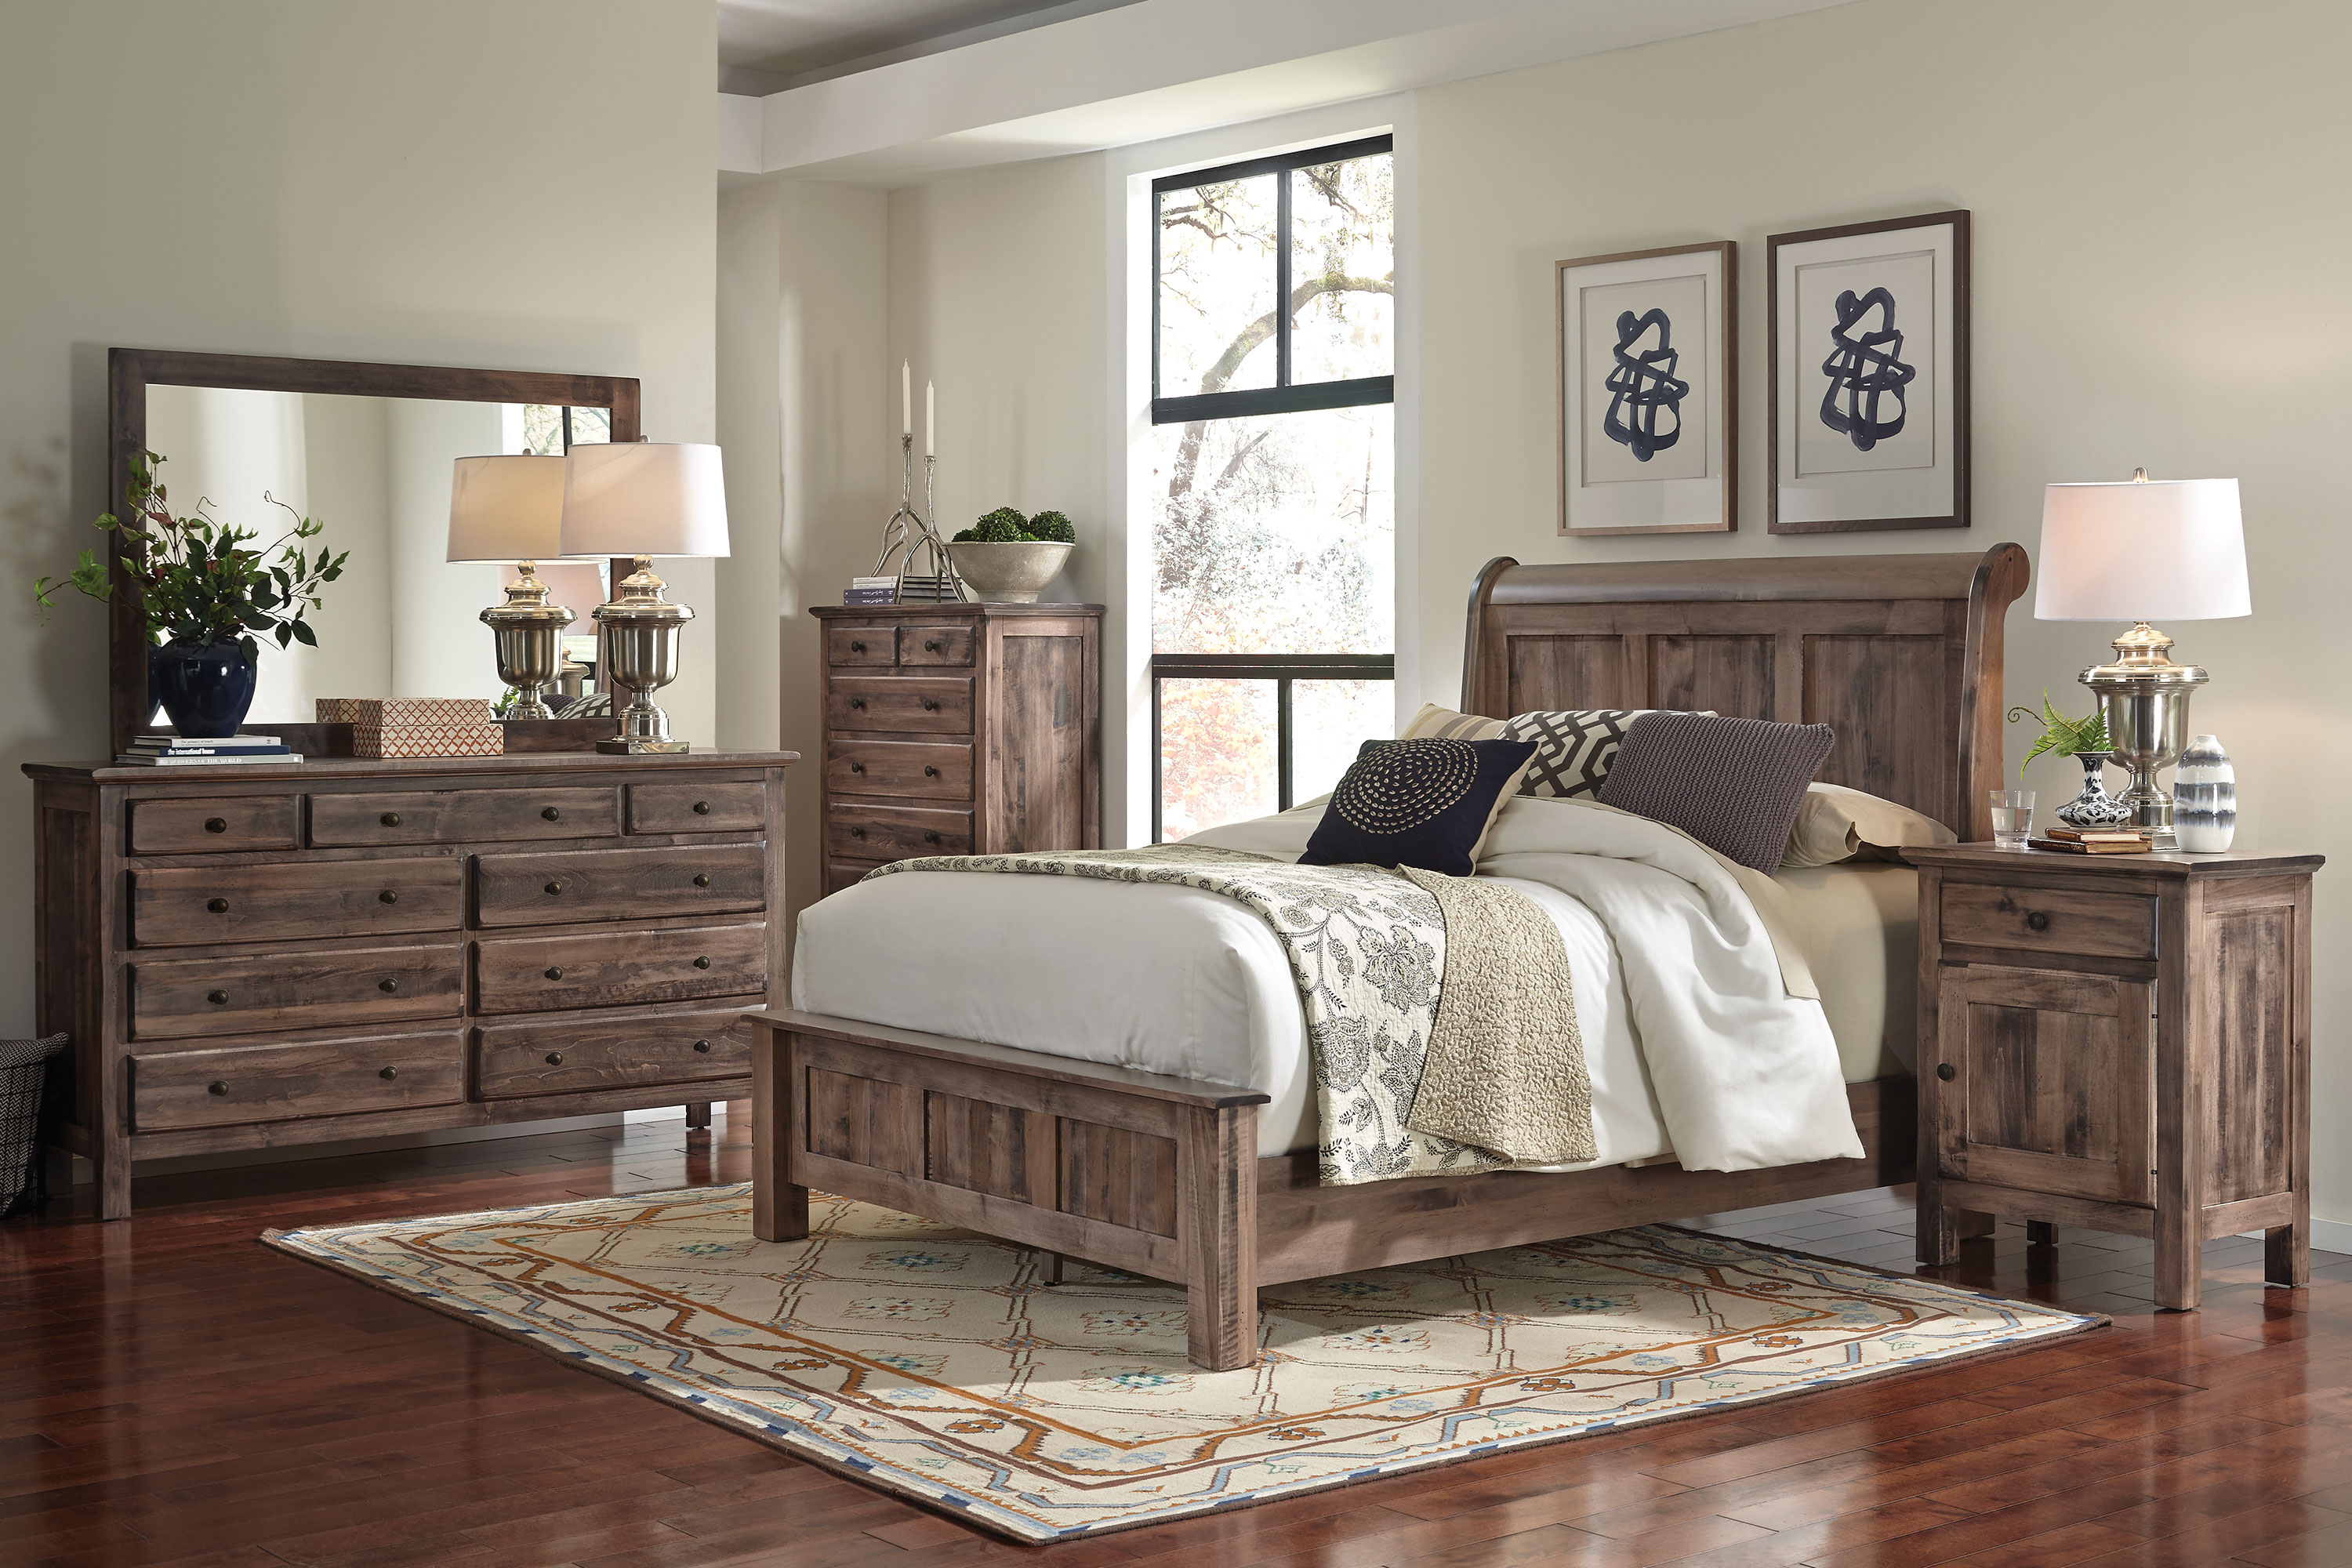 Lewiston 4 Piece Queen Bedroom